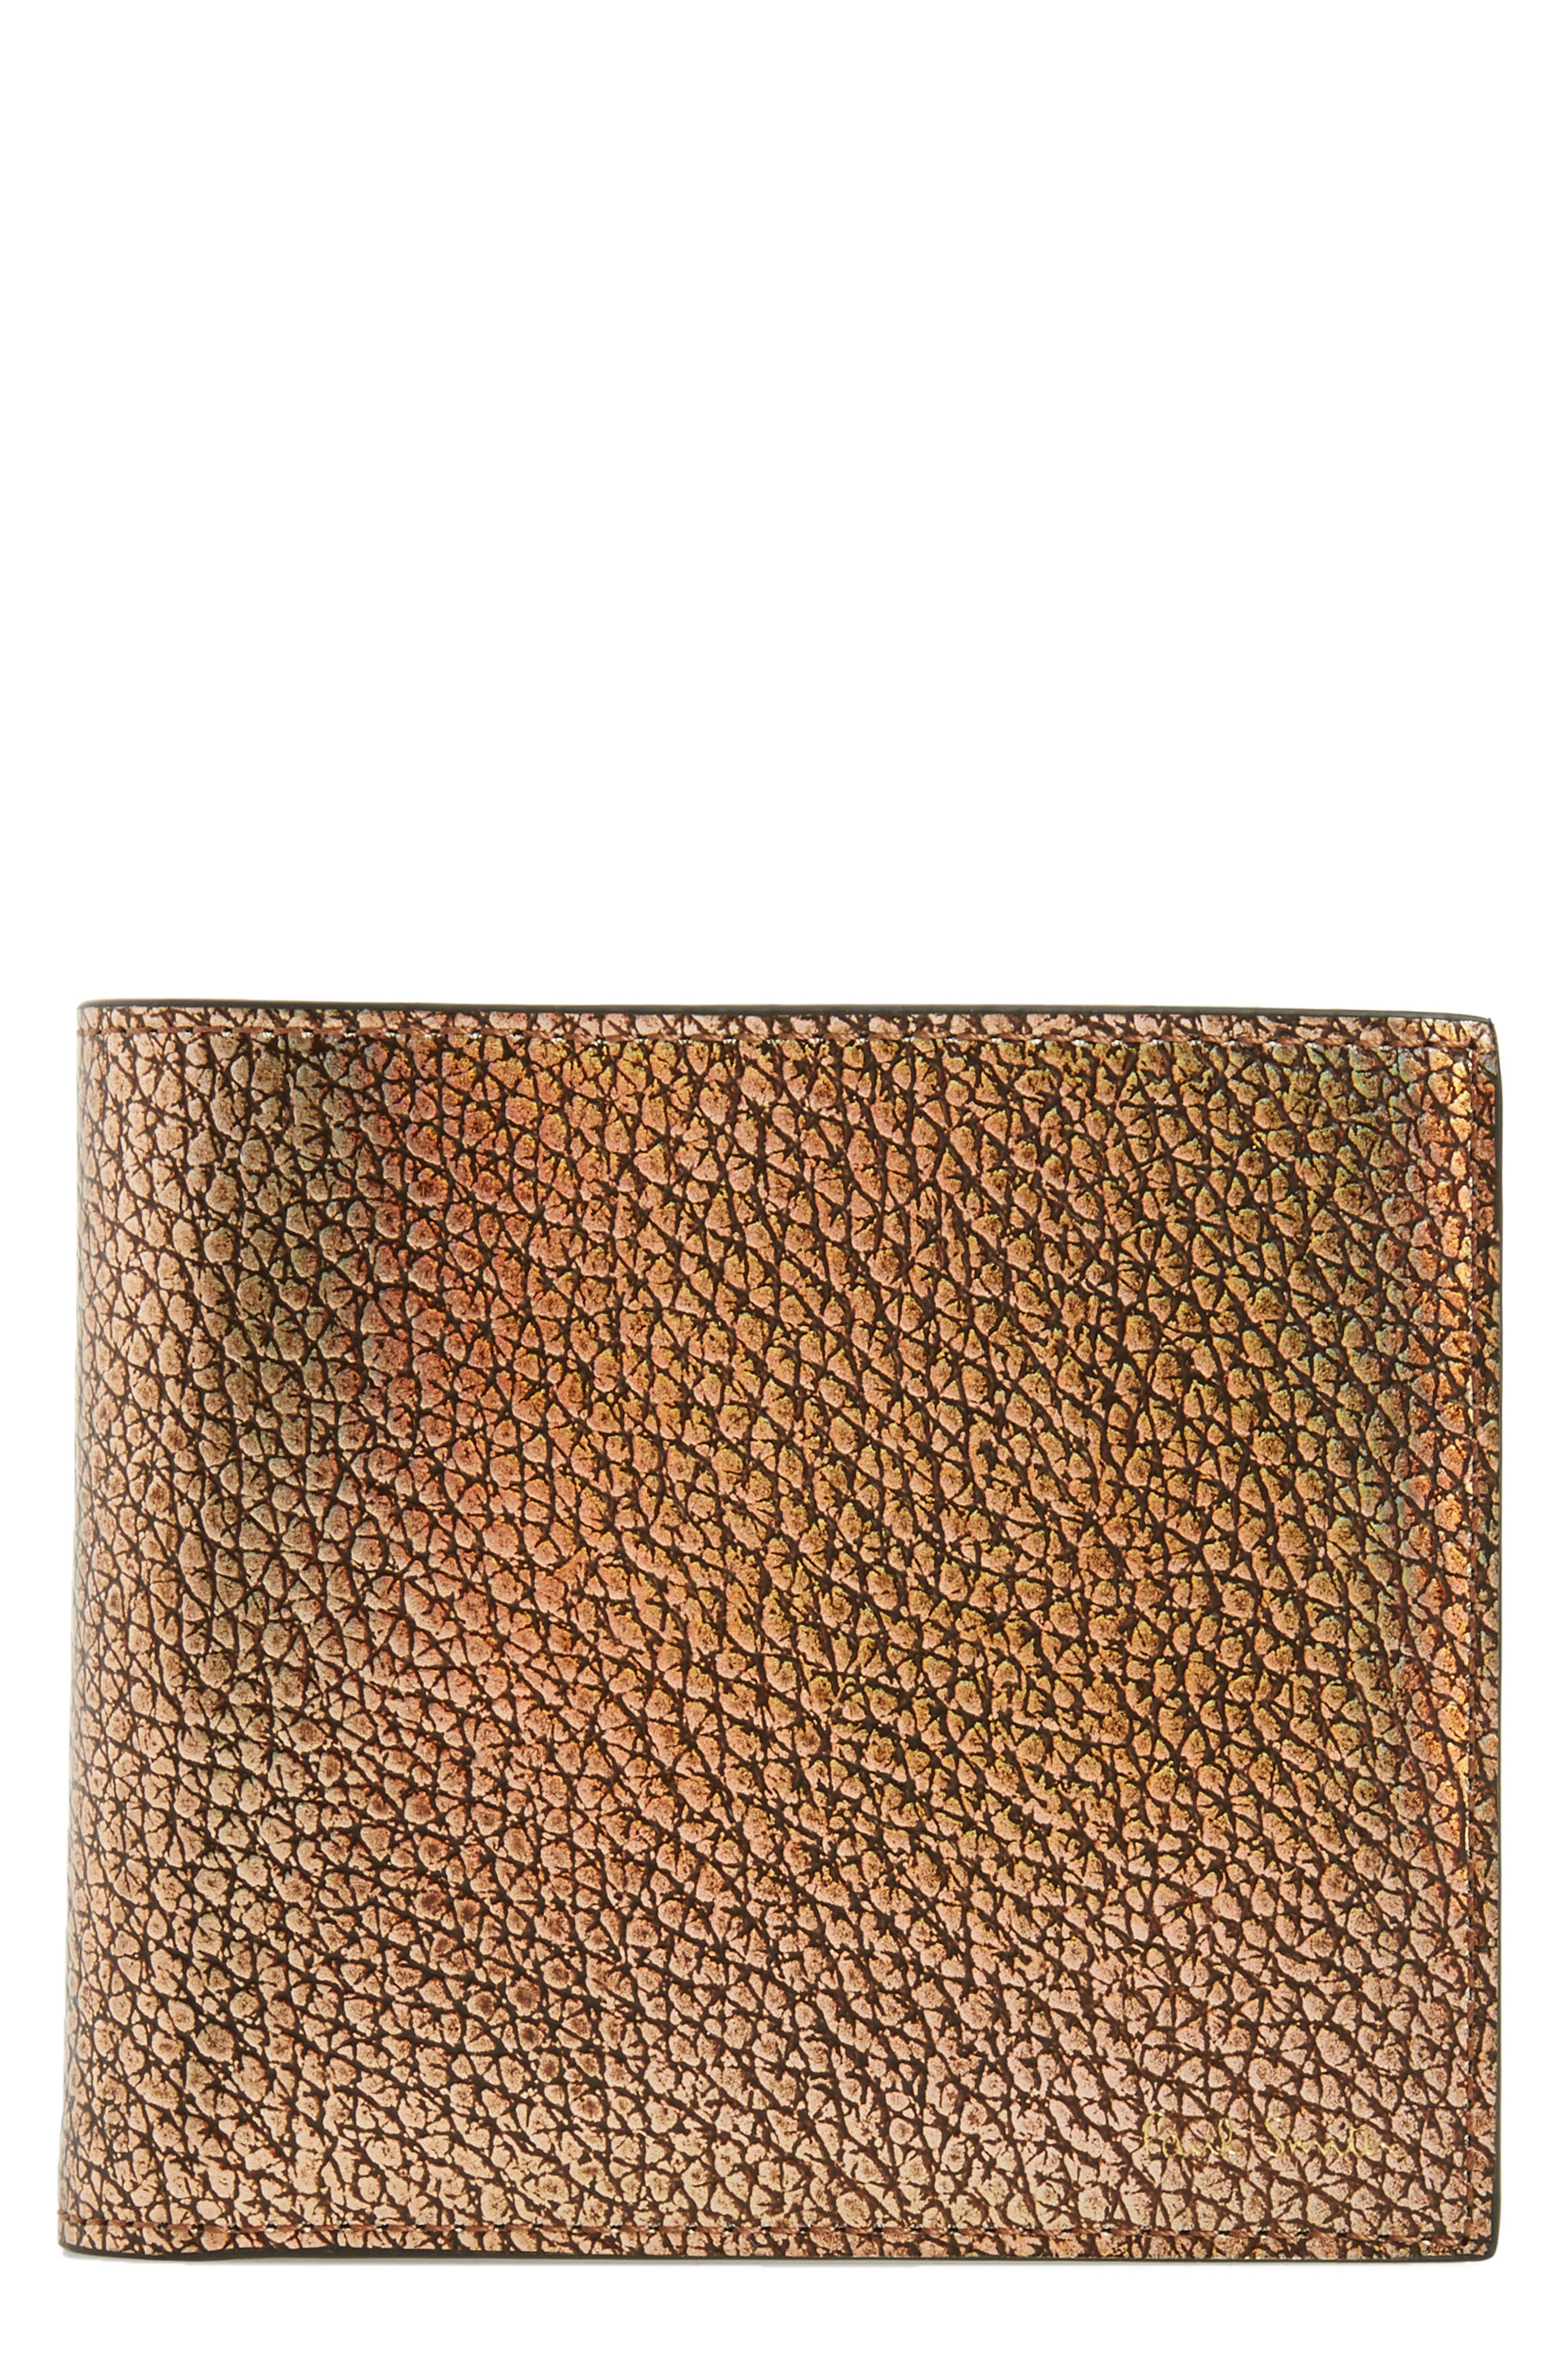 Metallic Leather Wallet,                             Main thumbnail 1, color,                             710